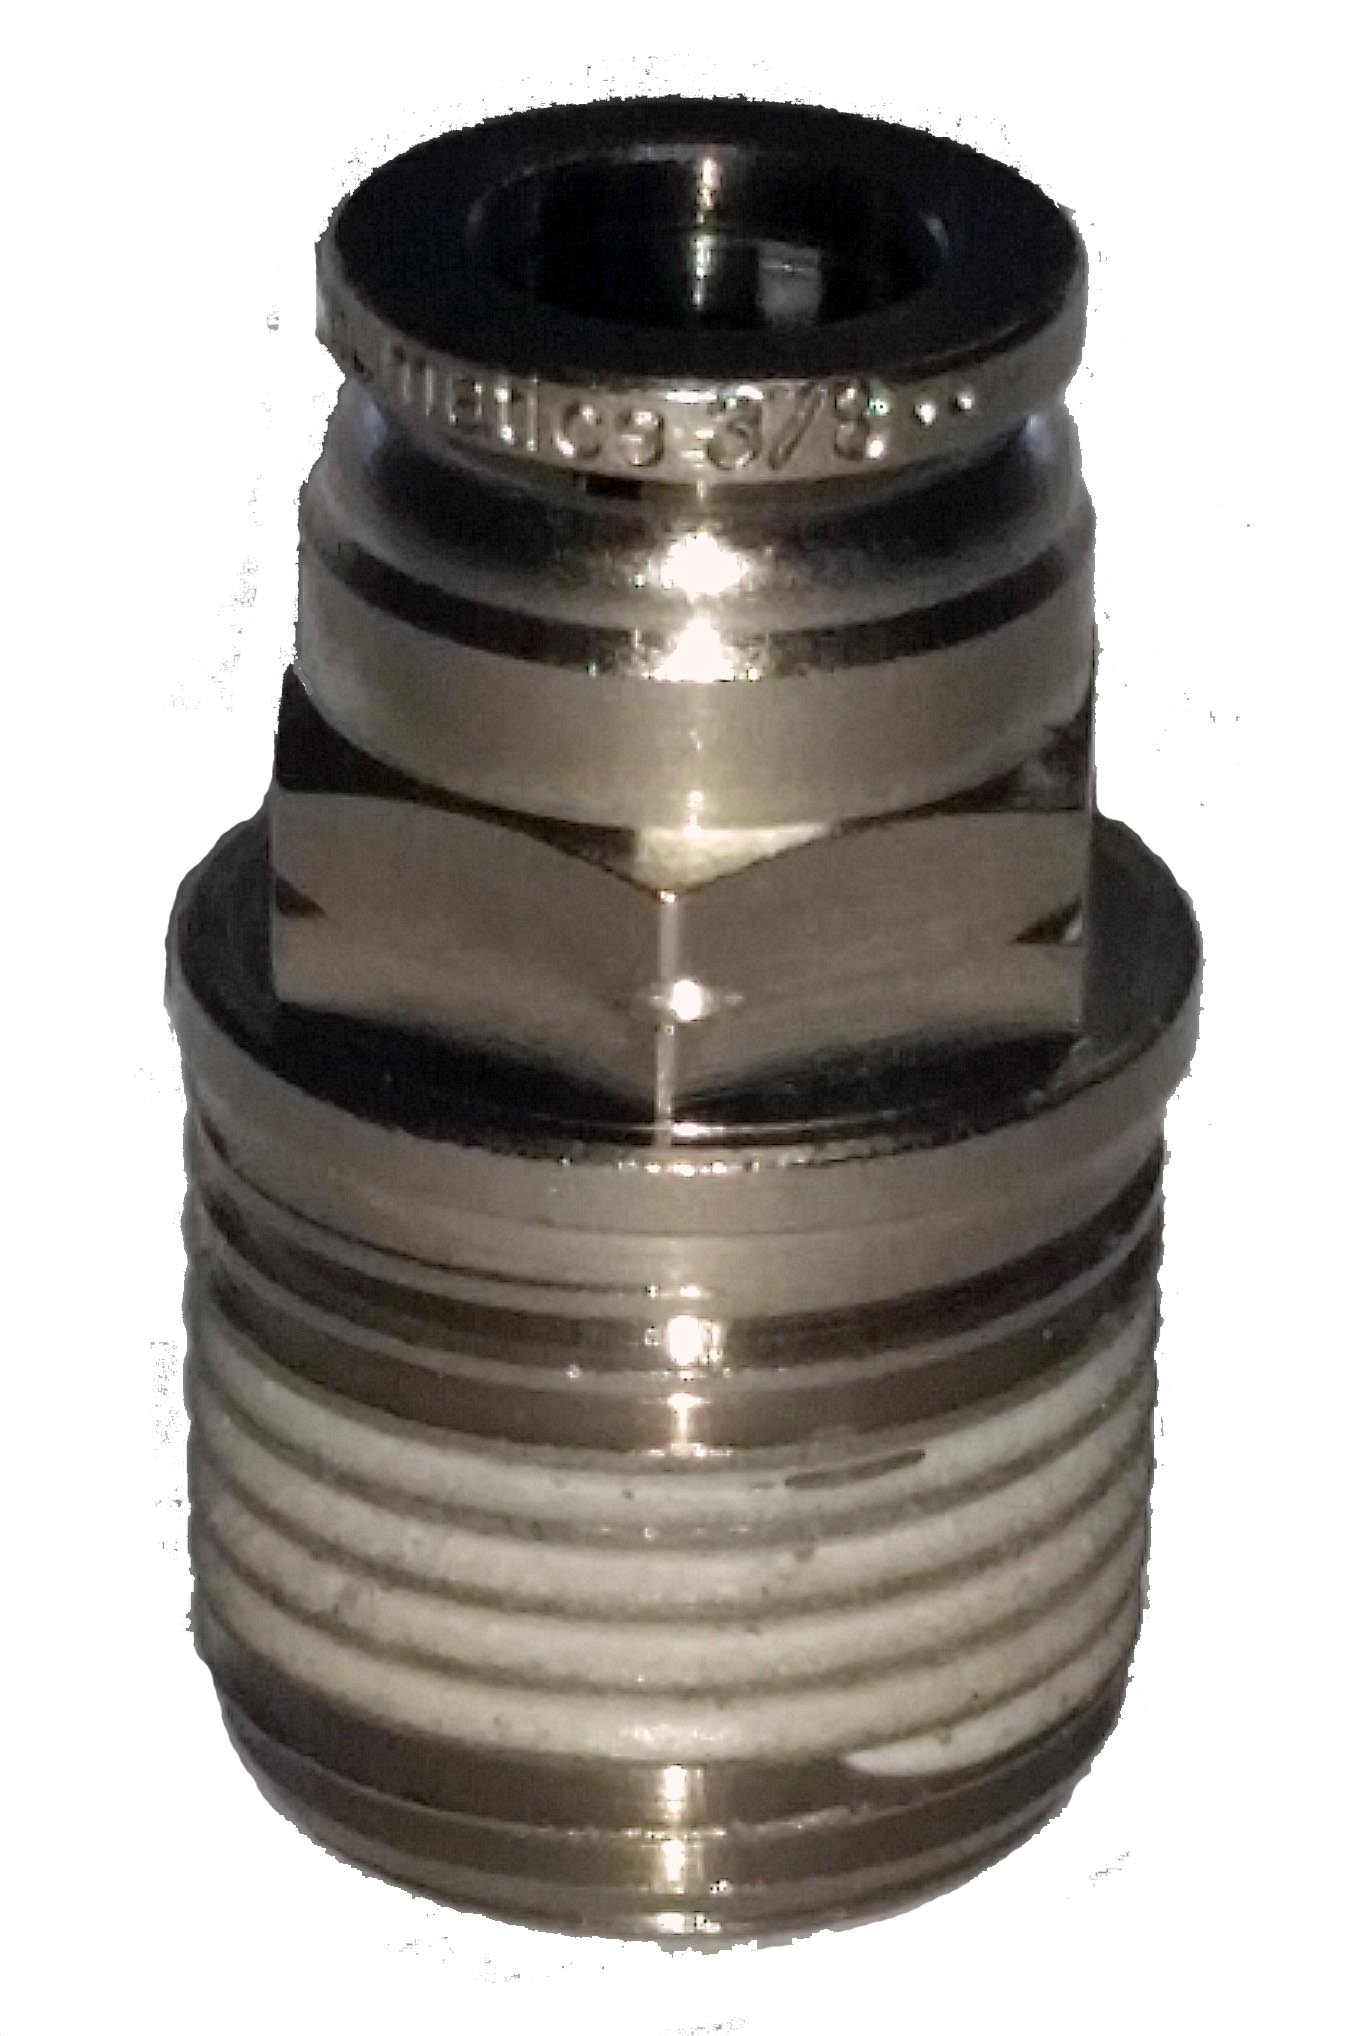 air fitting, air bag suspension, 1/2 inch, 3/8 inch, push to connect, metal, air ride, air bag, ptc-1238